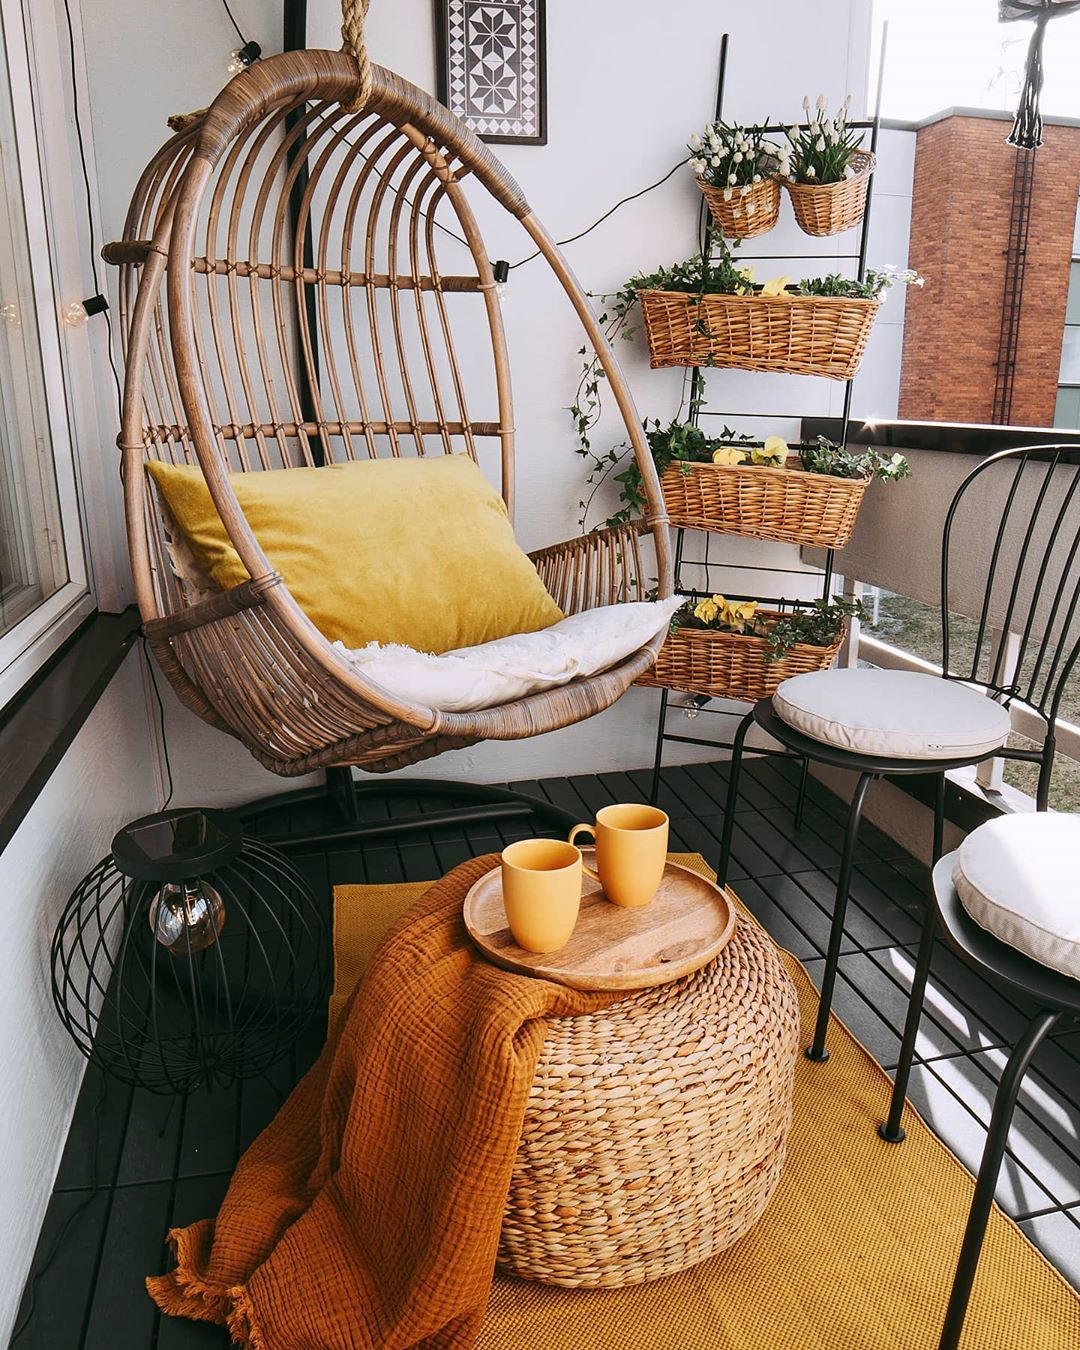 16 Boho Balcony Ideas That Are Staycation Goals in 16  Small